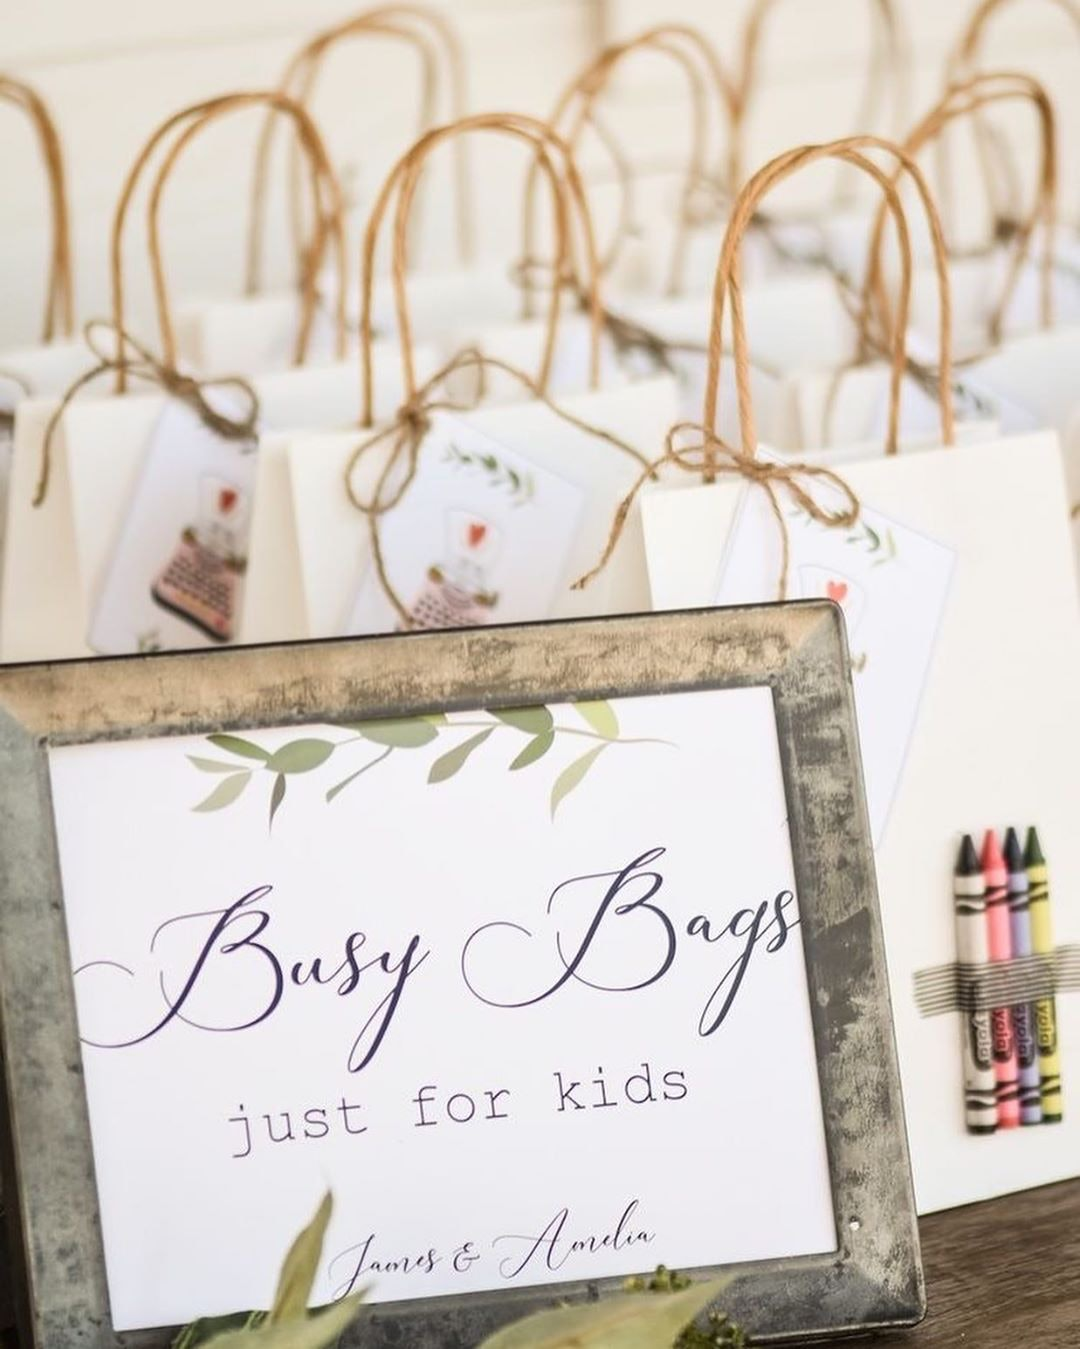 Activity bags for kids on a table